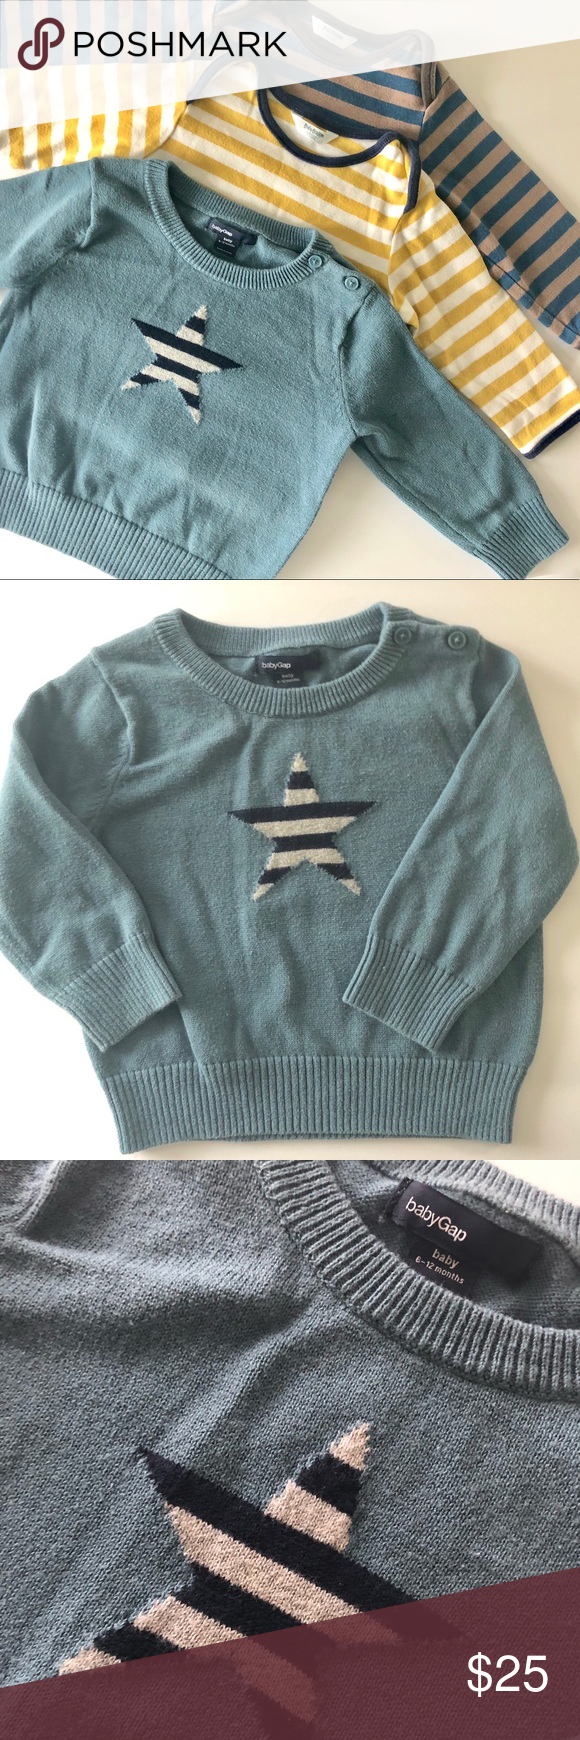 3e5d70eb7 Long Sleeve Lot 6-12 months in 2018